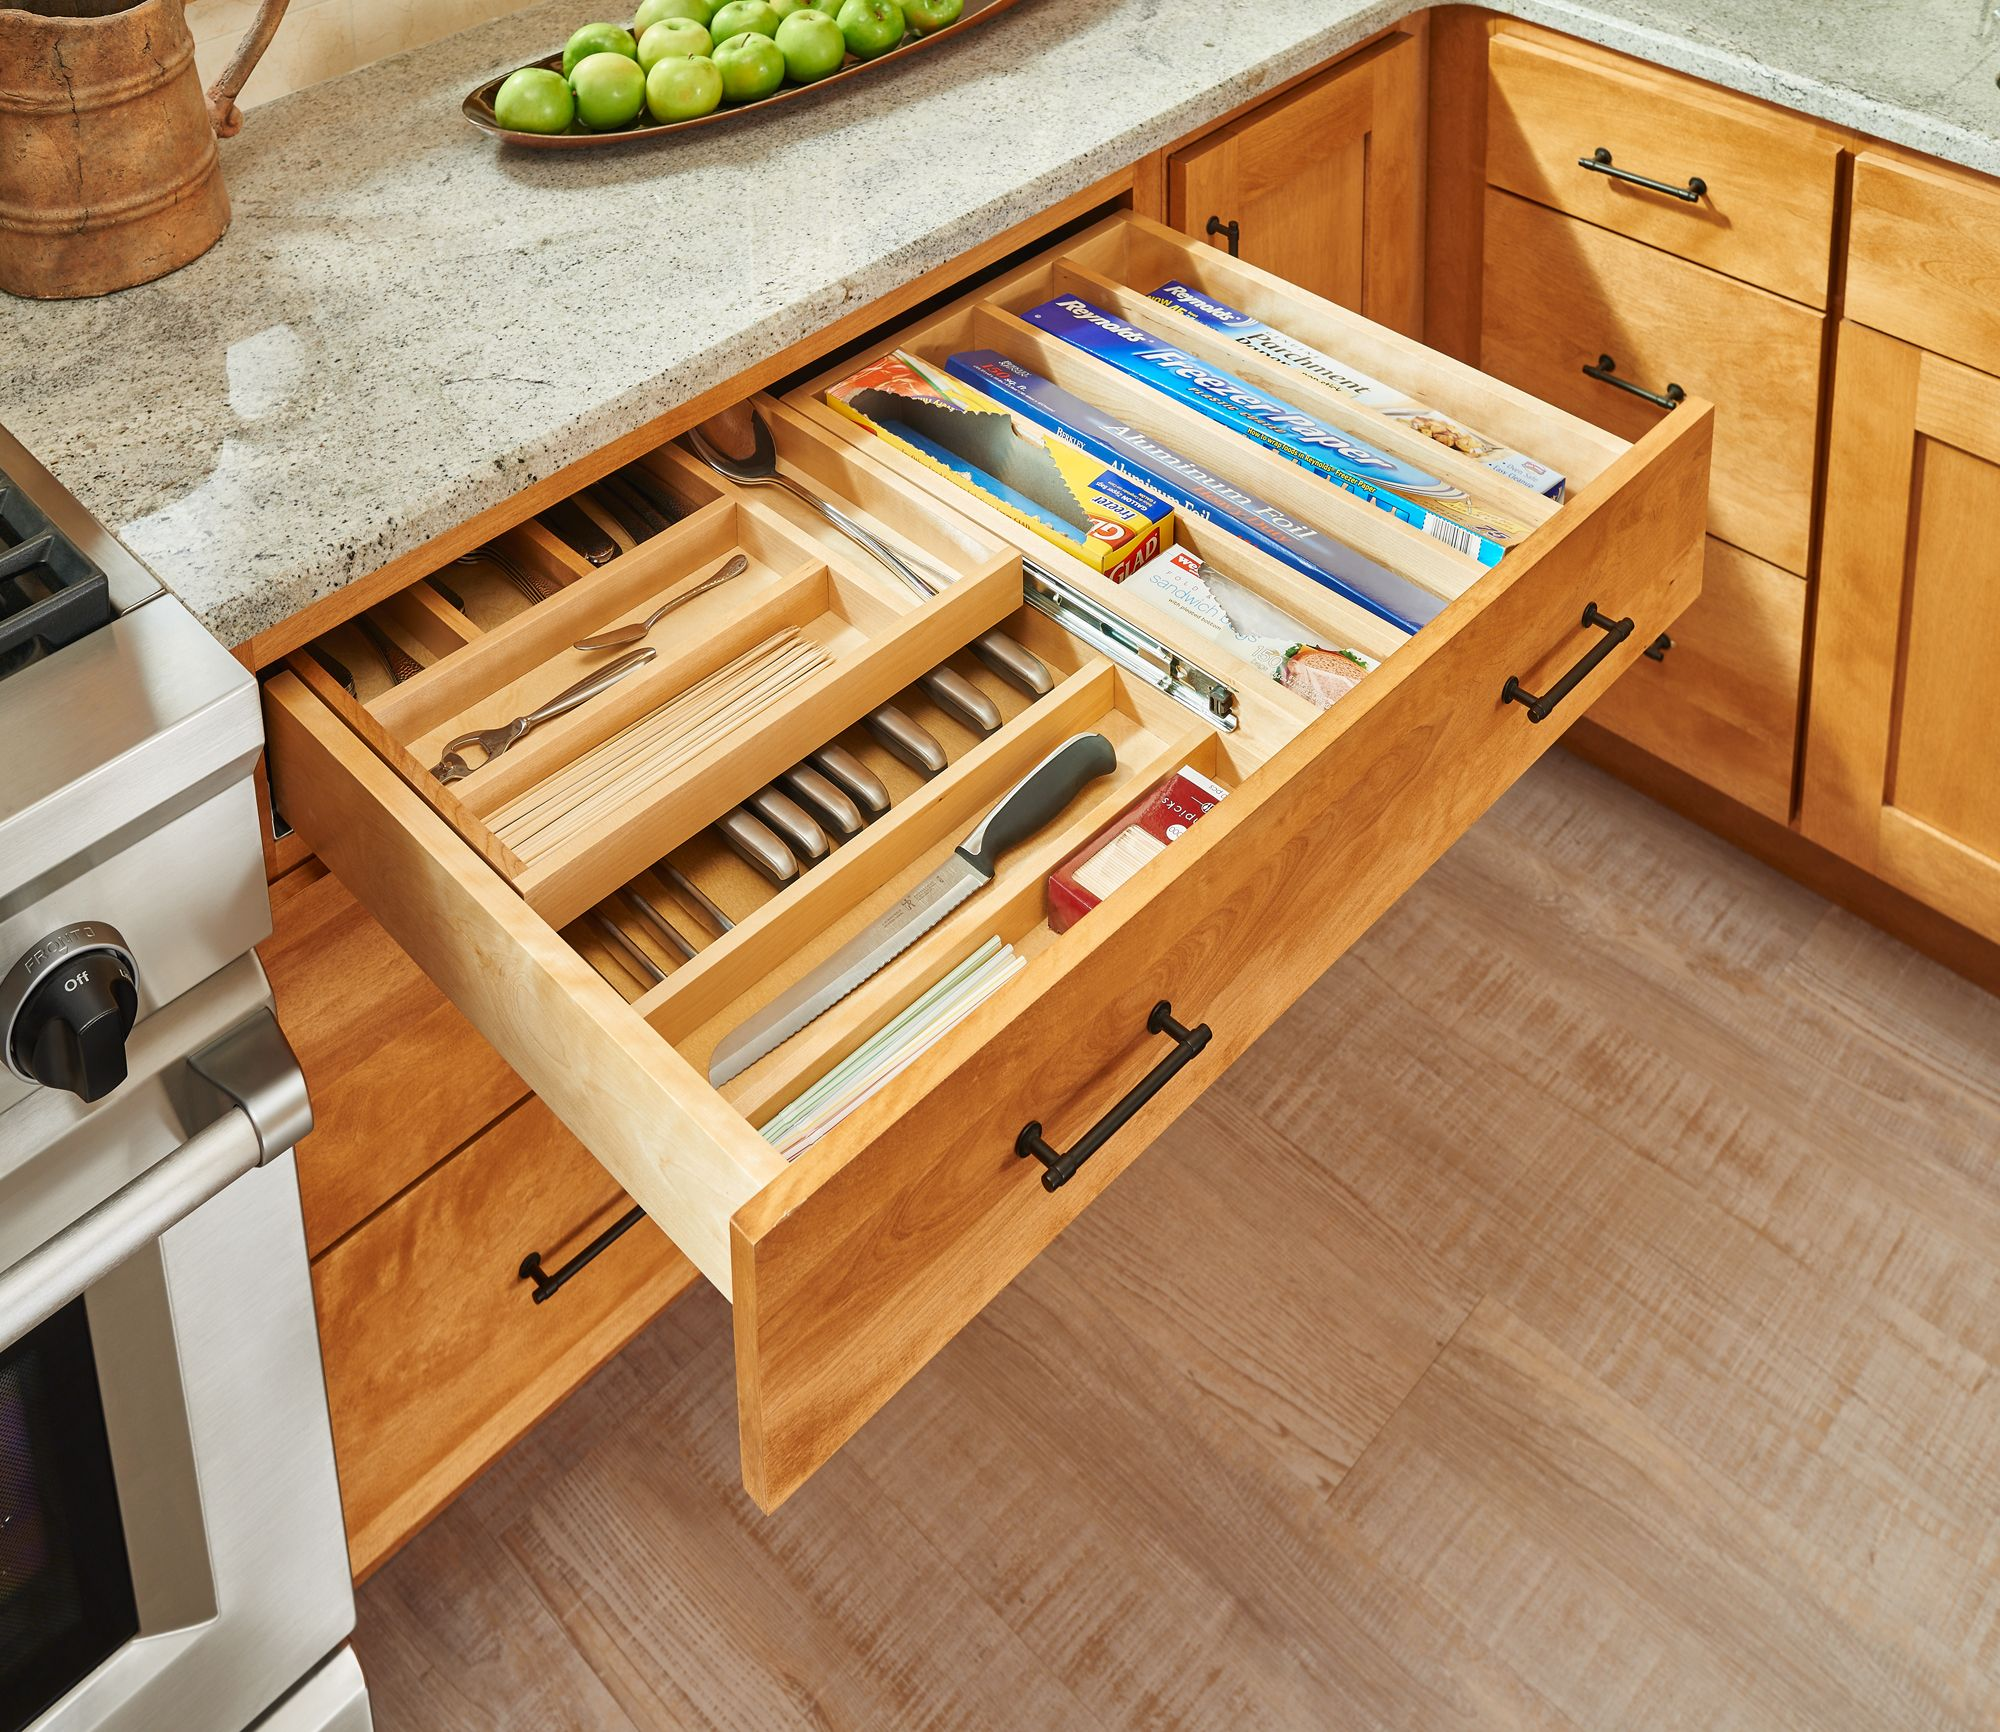 These Wider Cutlery Drawers By Rev A Shelf Are Designed For 30 And 36 Inch Cabinets An Kitchen Remodel Kitchen Drawer Organization Kitchen Renovation